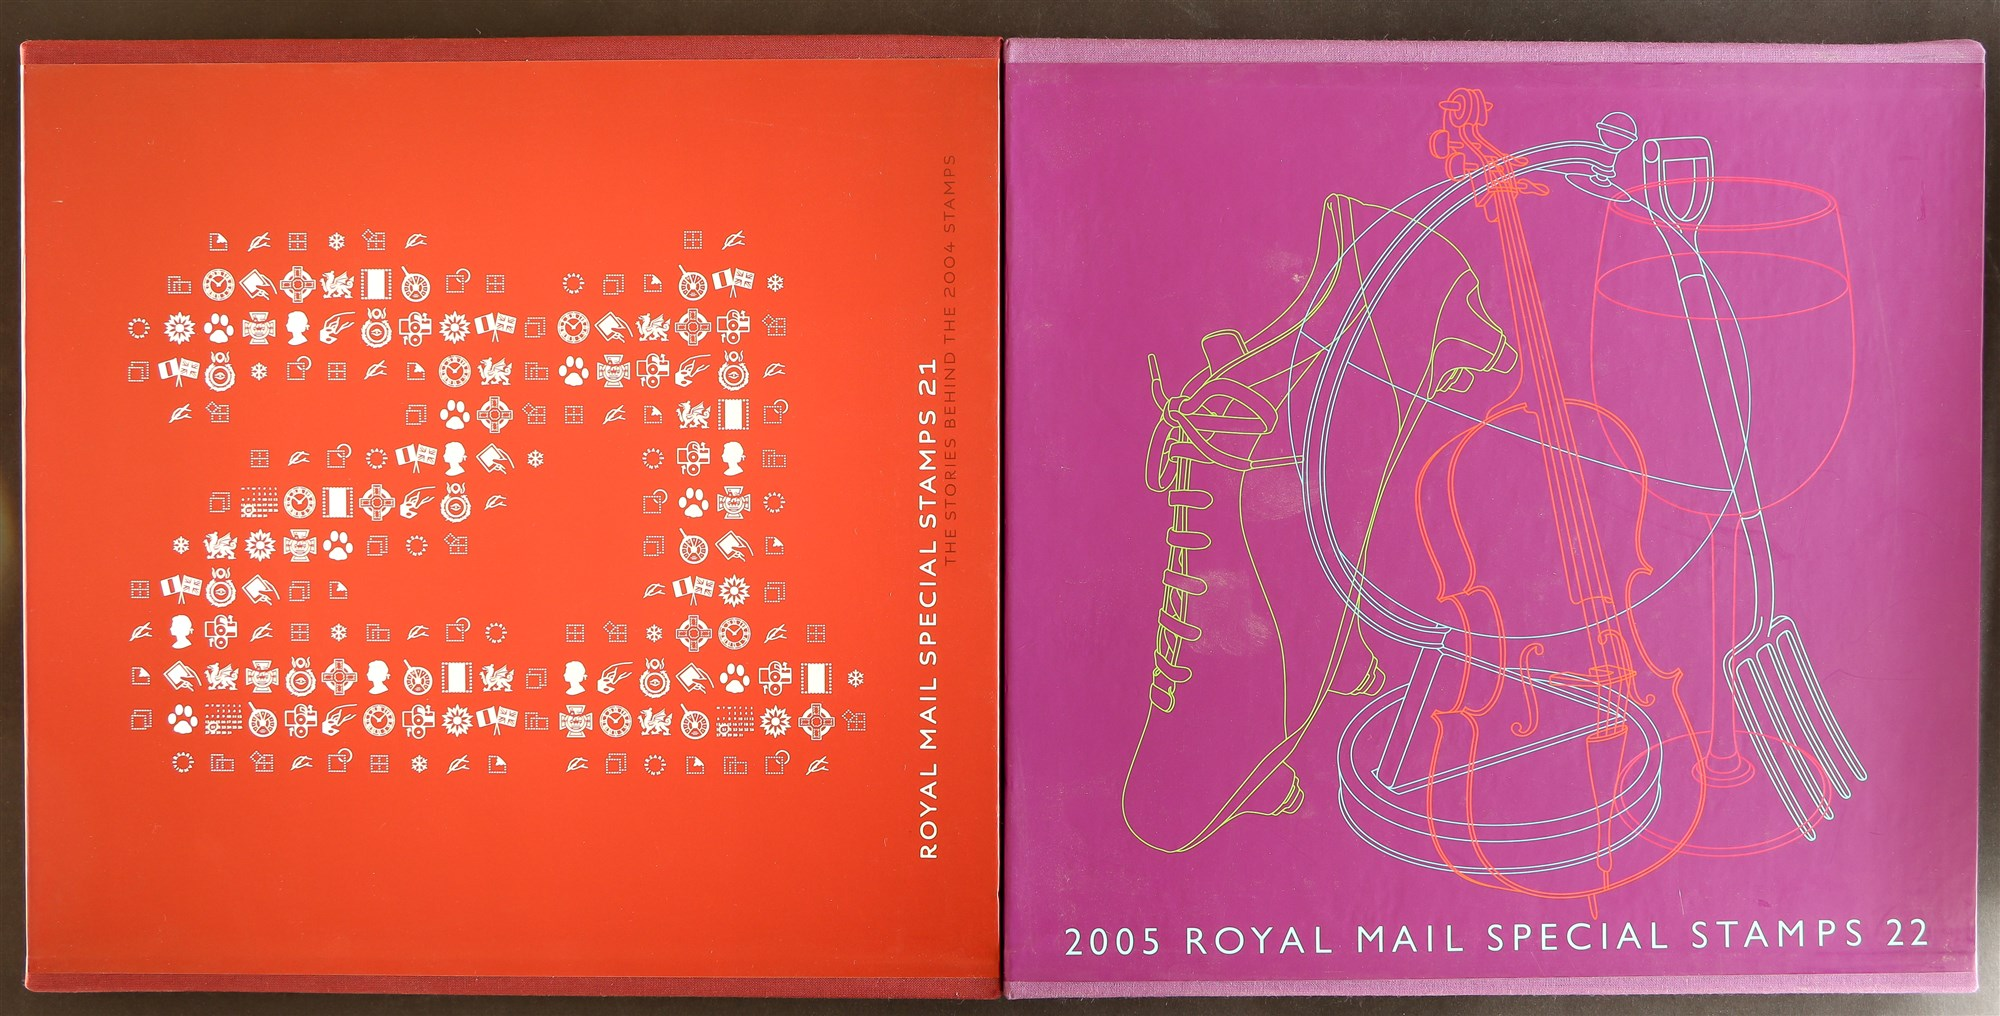 GB.ELIZABETH II YEAR BOOKS 2002 - 2006. Complete run of 5 books from number 19 (2002) to number - Image 2 of 3